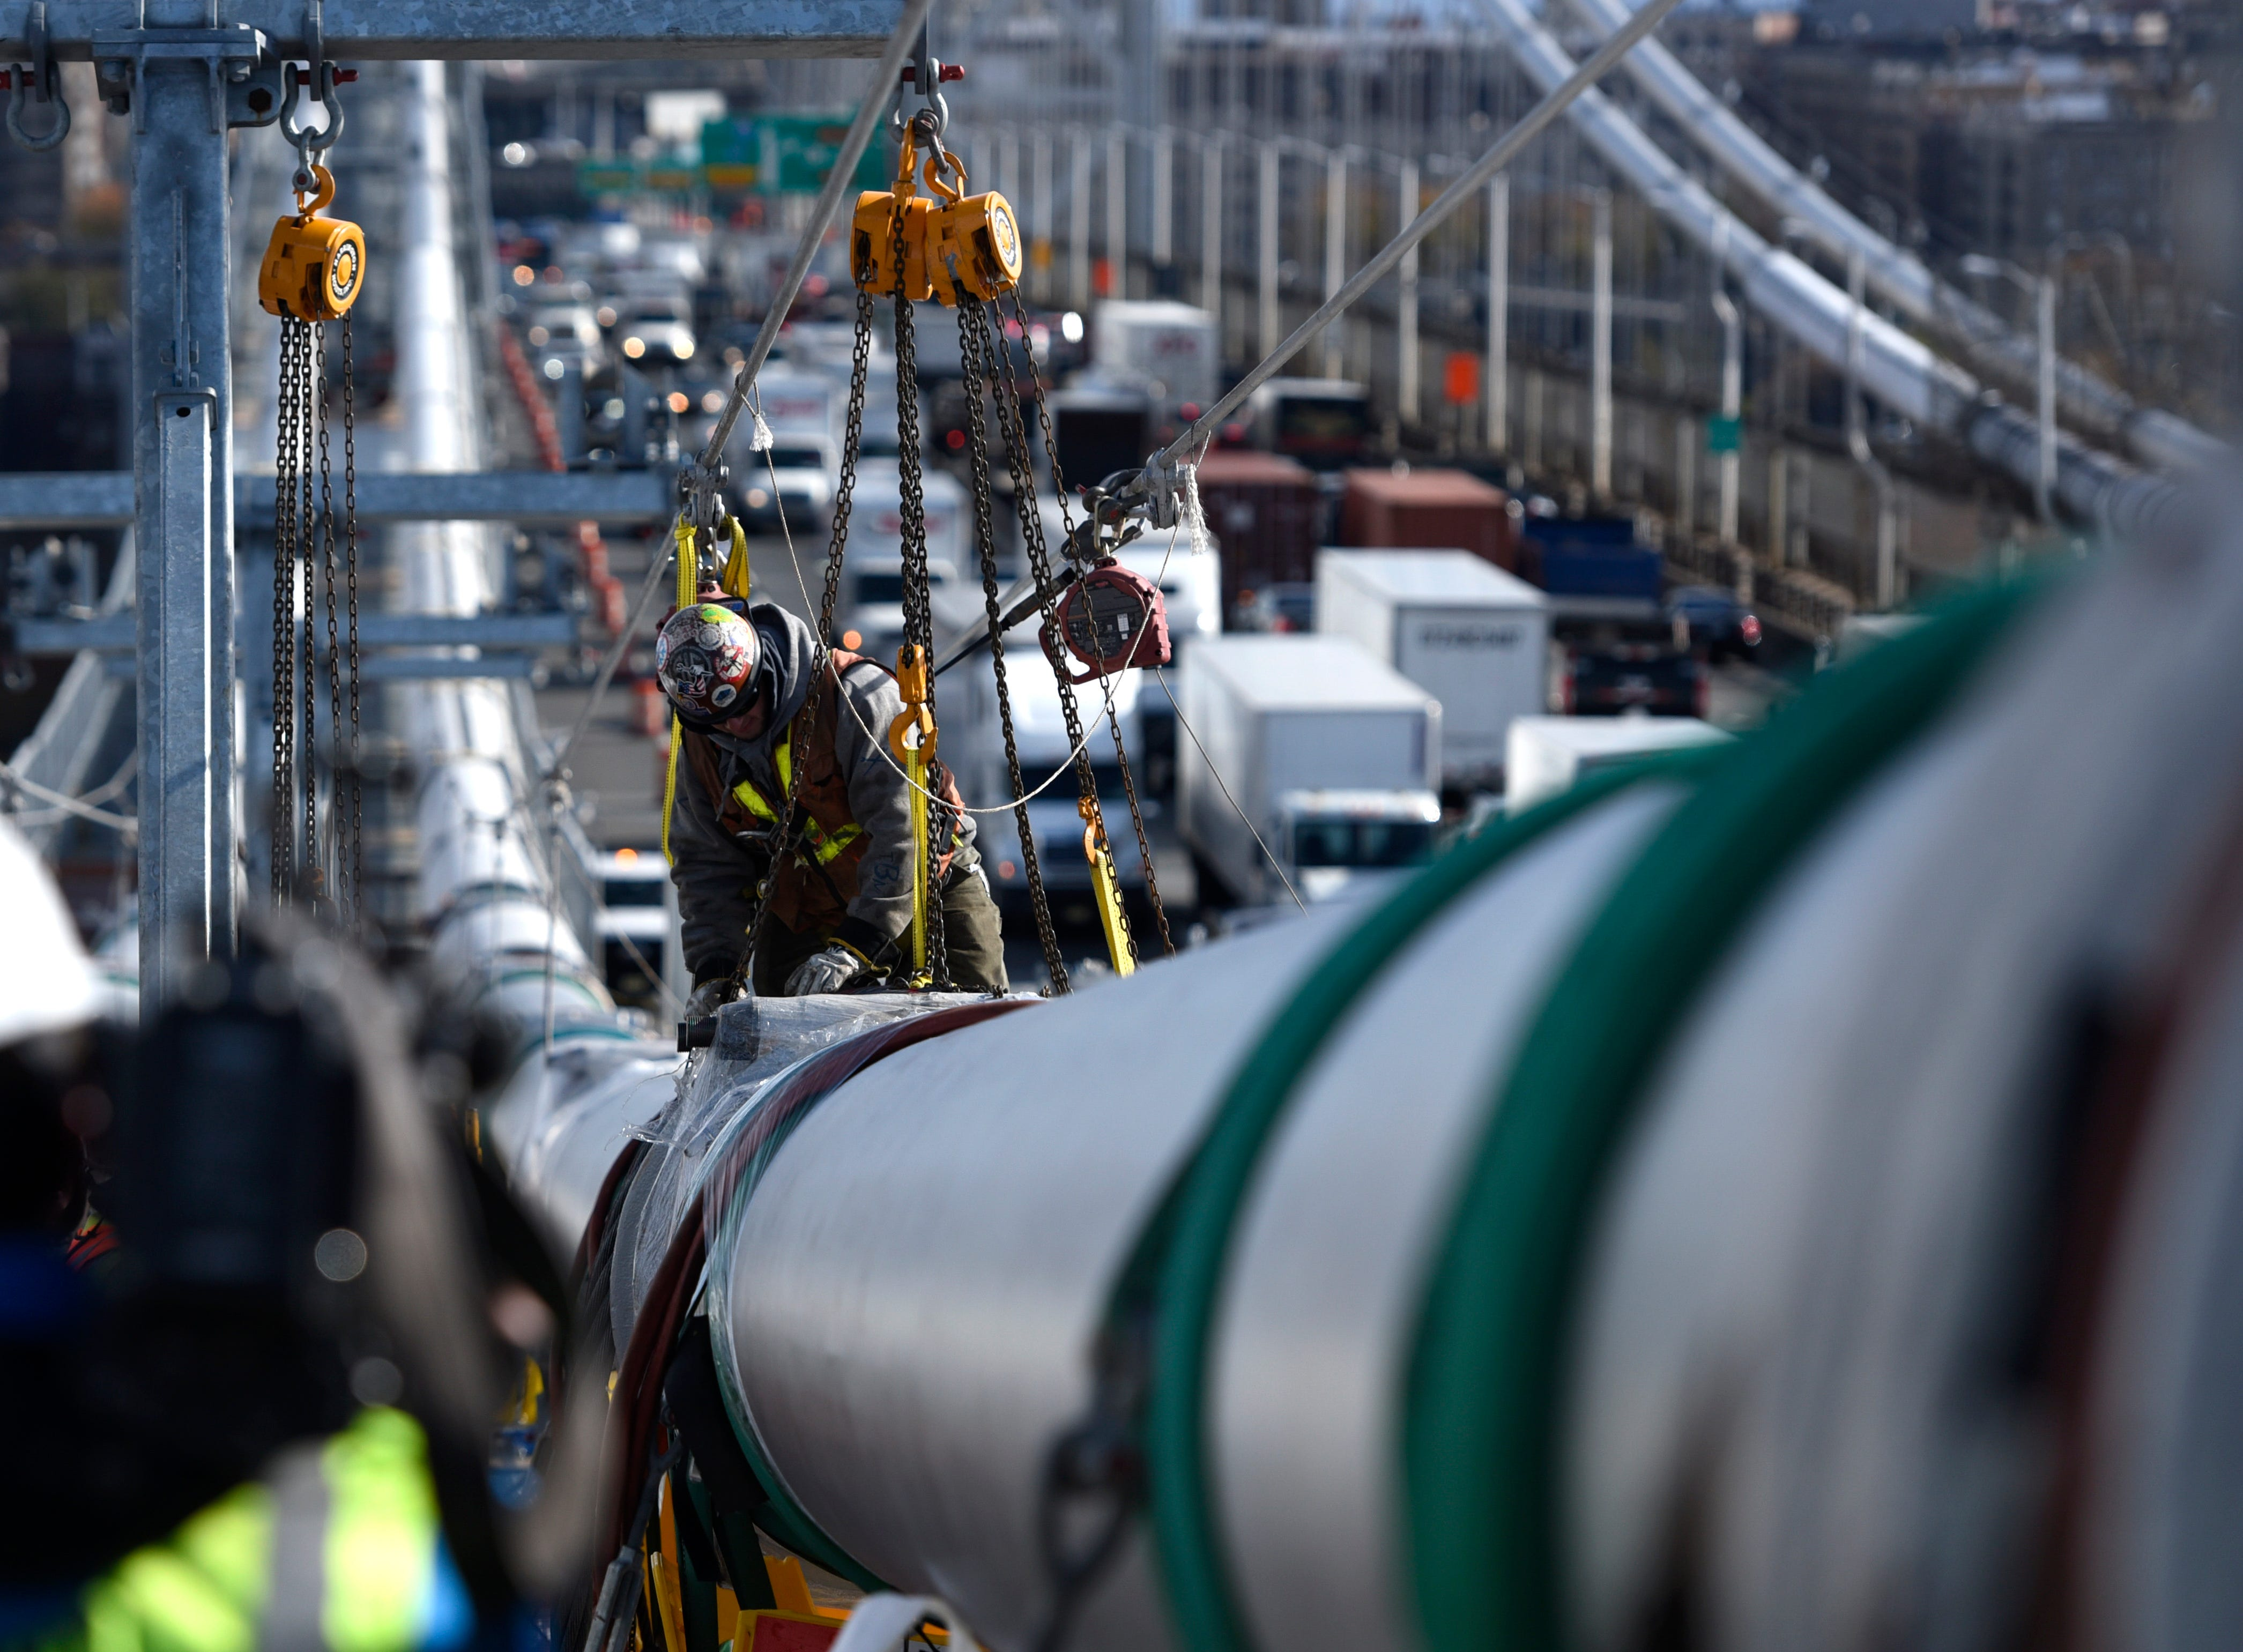 A construction worker works on one of the main cables of the George Washington Bridge on Wednesday, Nov. 14, 2018. The main cables will need to be temporary replaced as they are rehabilitated, and the suspender ropes will be replaced entirely as they are all original components of the bridge, built in 1927. The Port Authority estimates the project will take six to seven years.